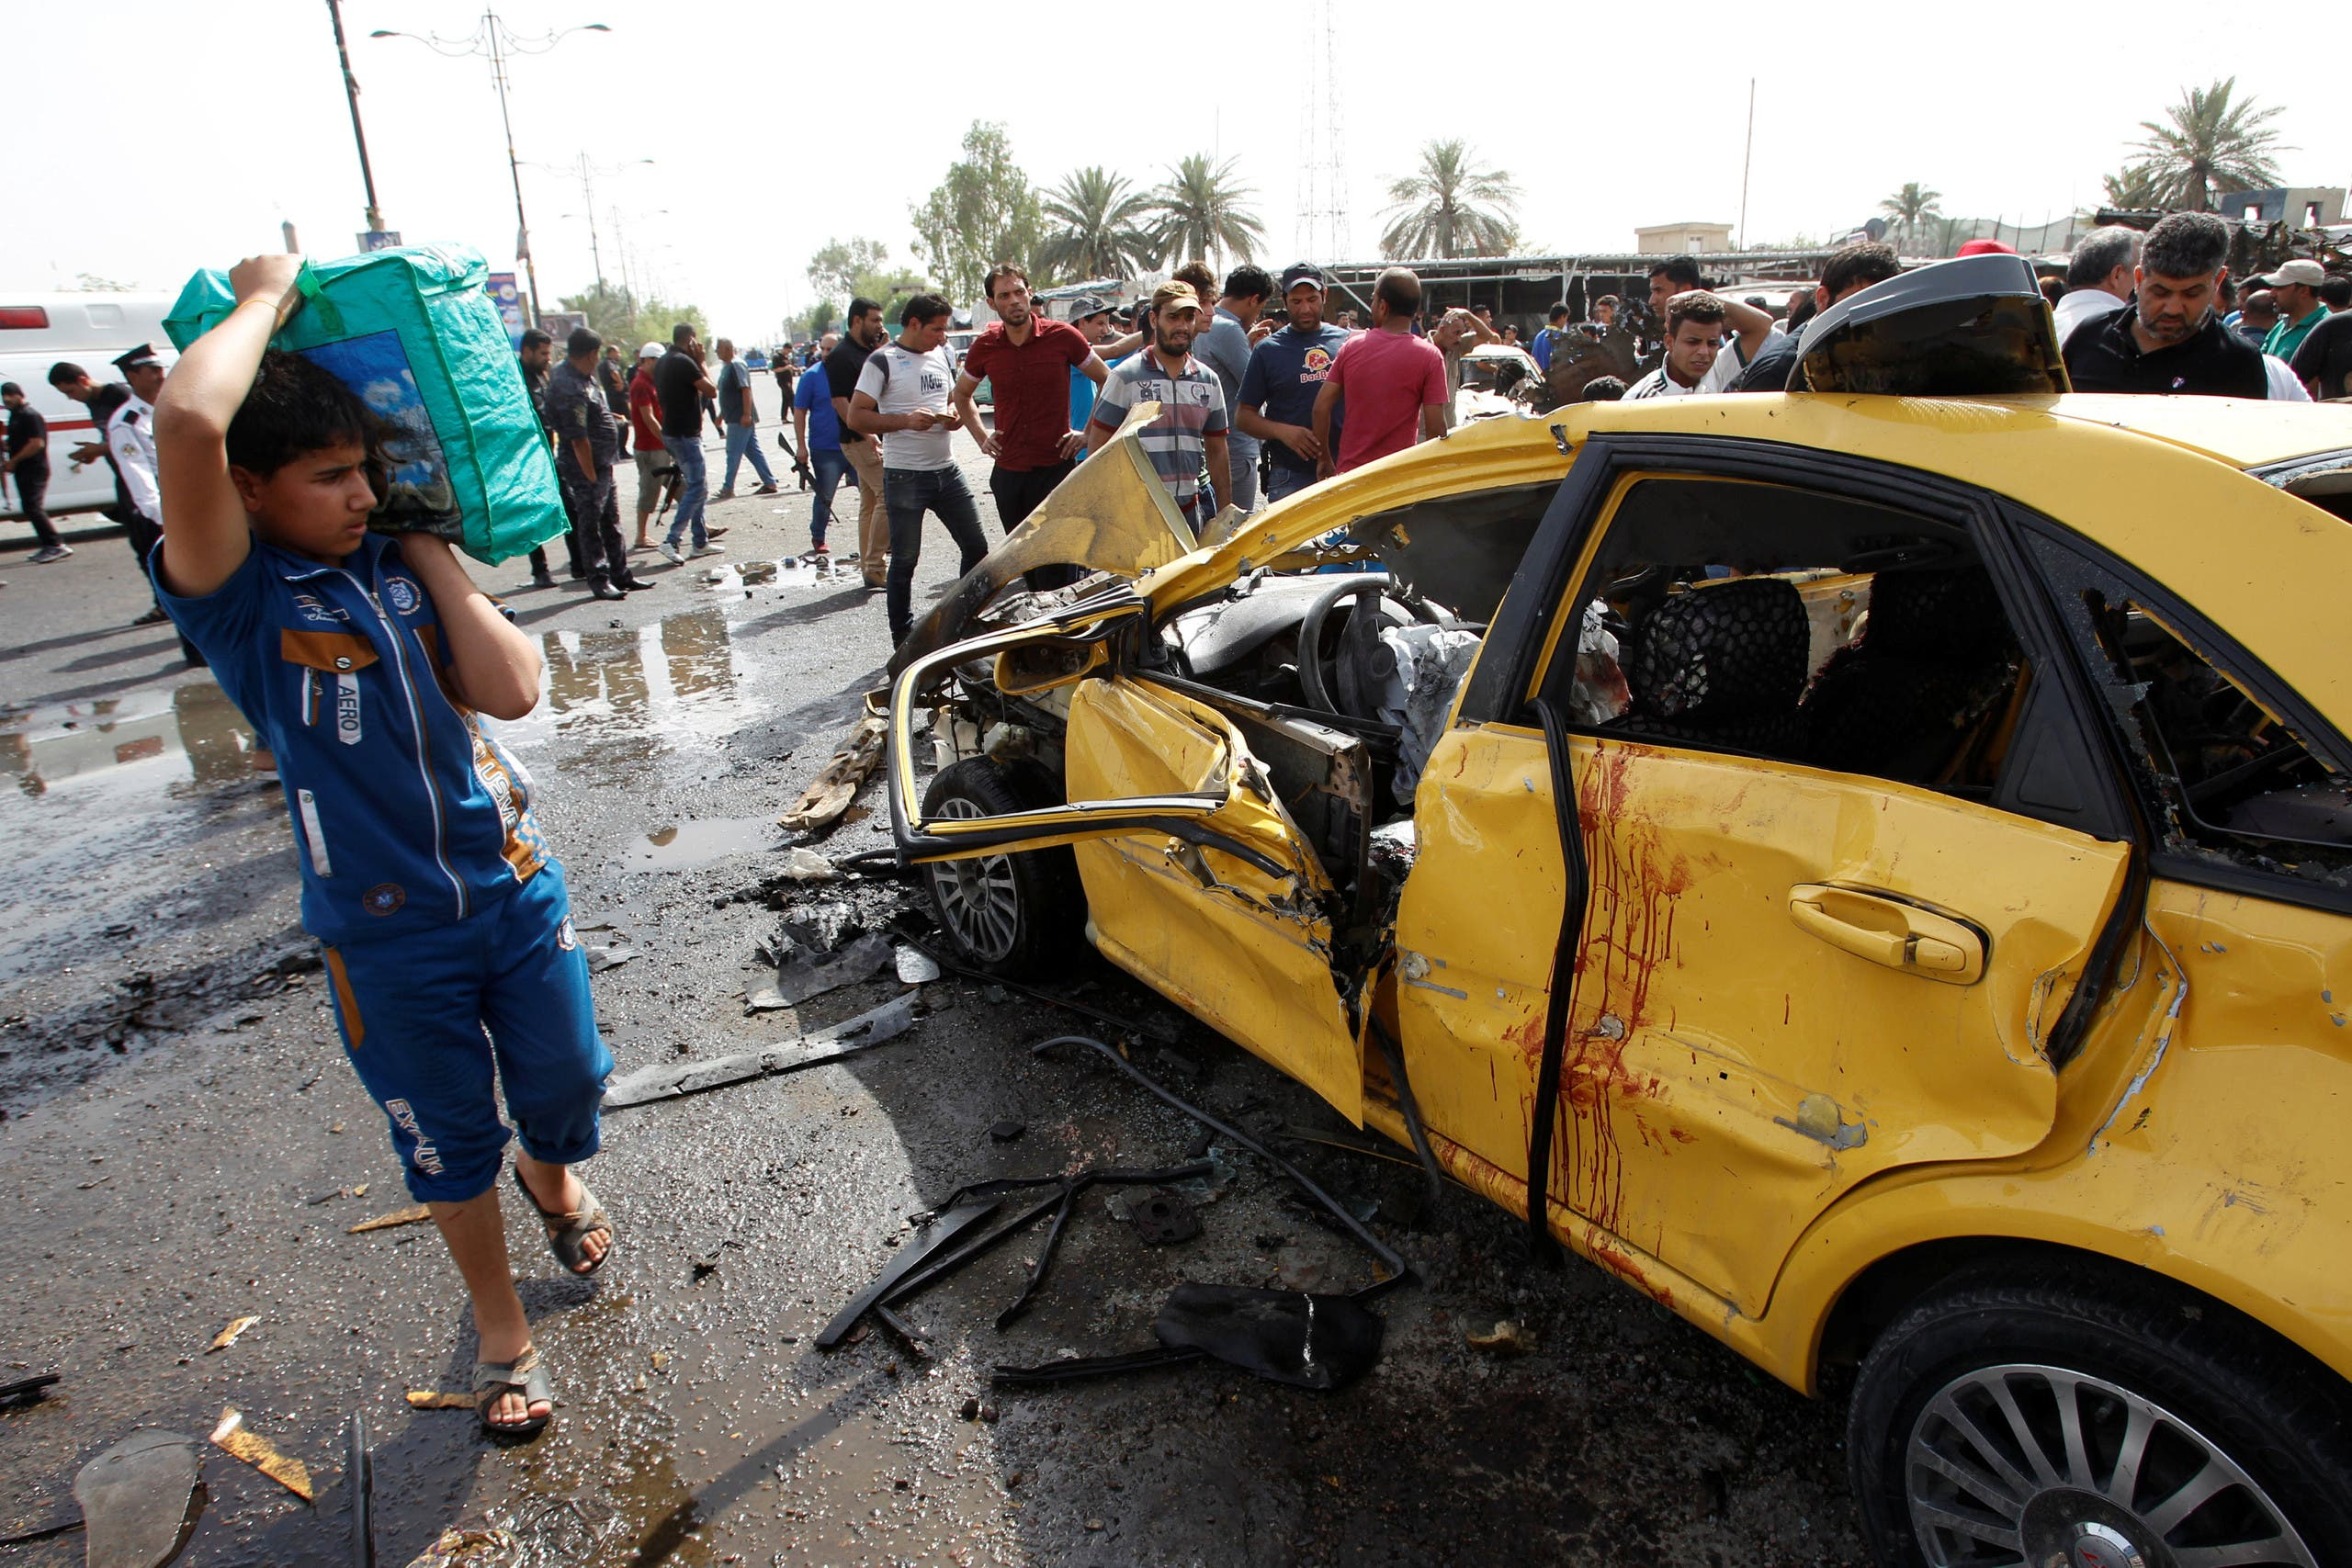 Aftermath of three bomb attacks in Baghdad